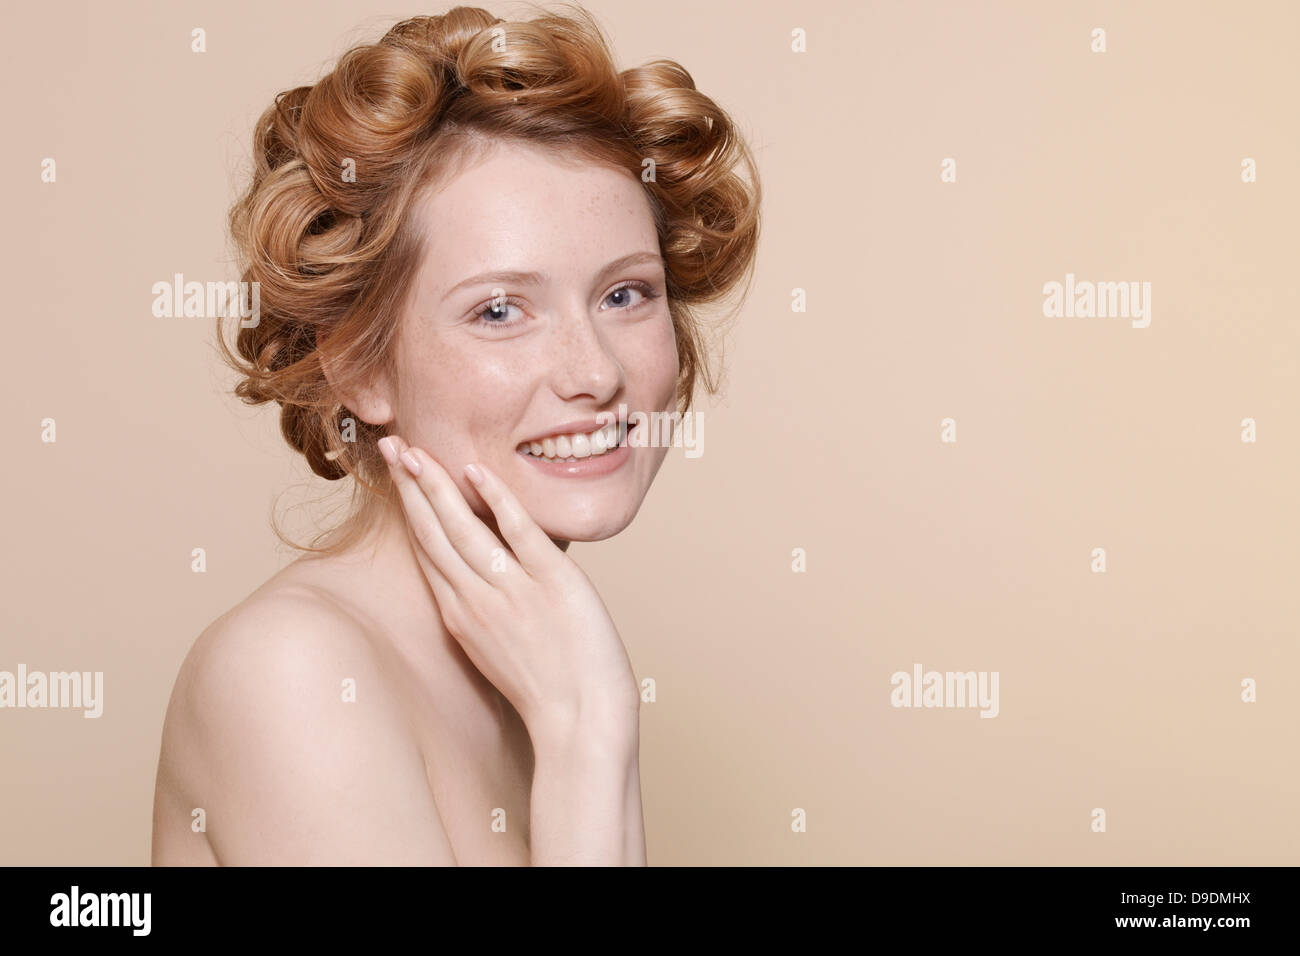 Young woman with curly red hair, portrait - Stock Image